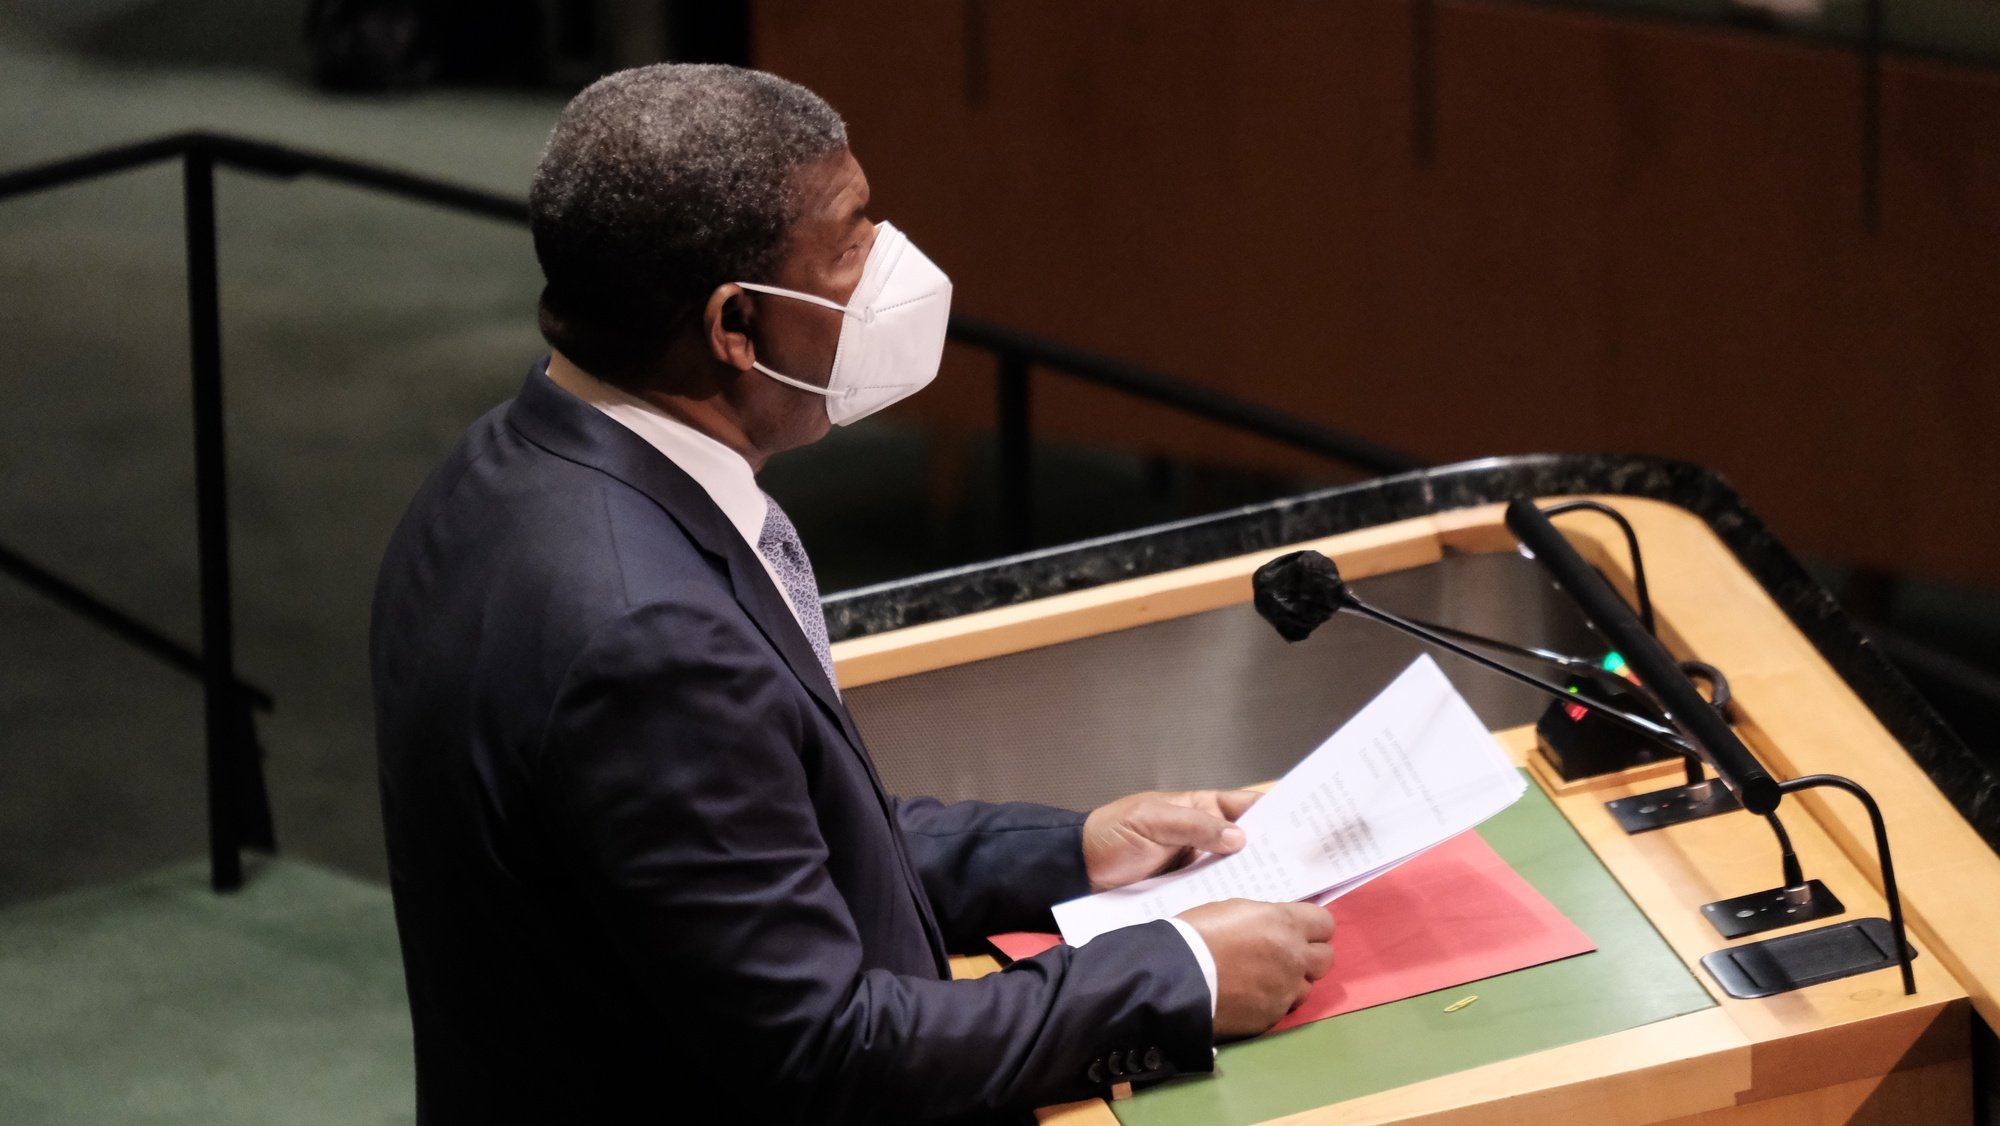 epa09483392 President of Angola Joao Lourenco speaks during the 76th Session of the General Assembly at UN Headquarters in New York City, New York, USA, 23 September 2021.  EPA/SPENCER PLATT / POOL